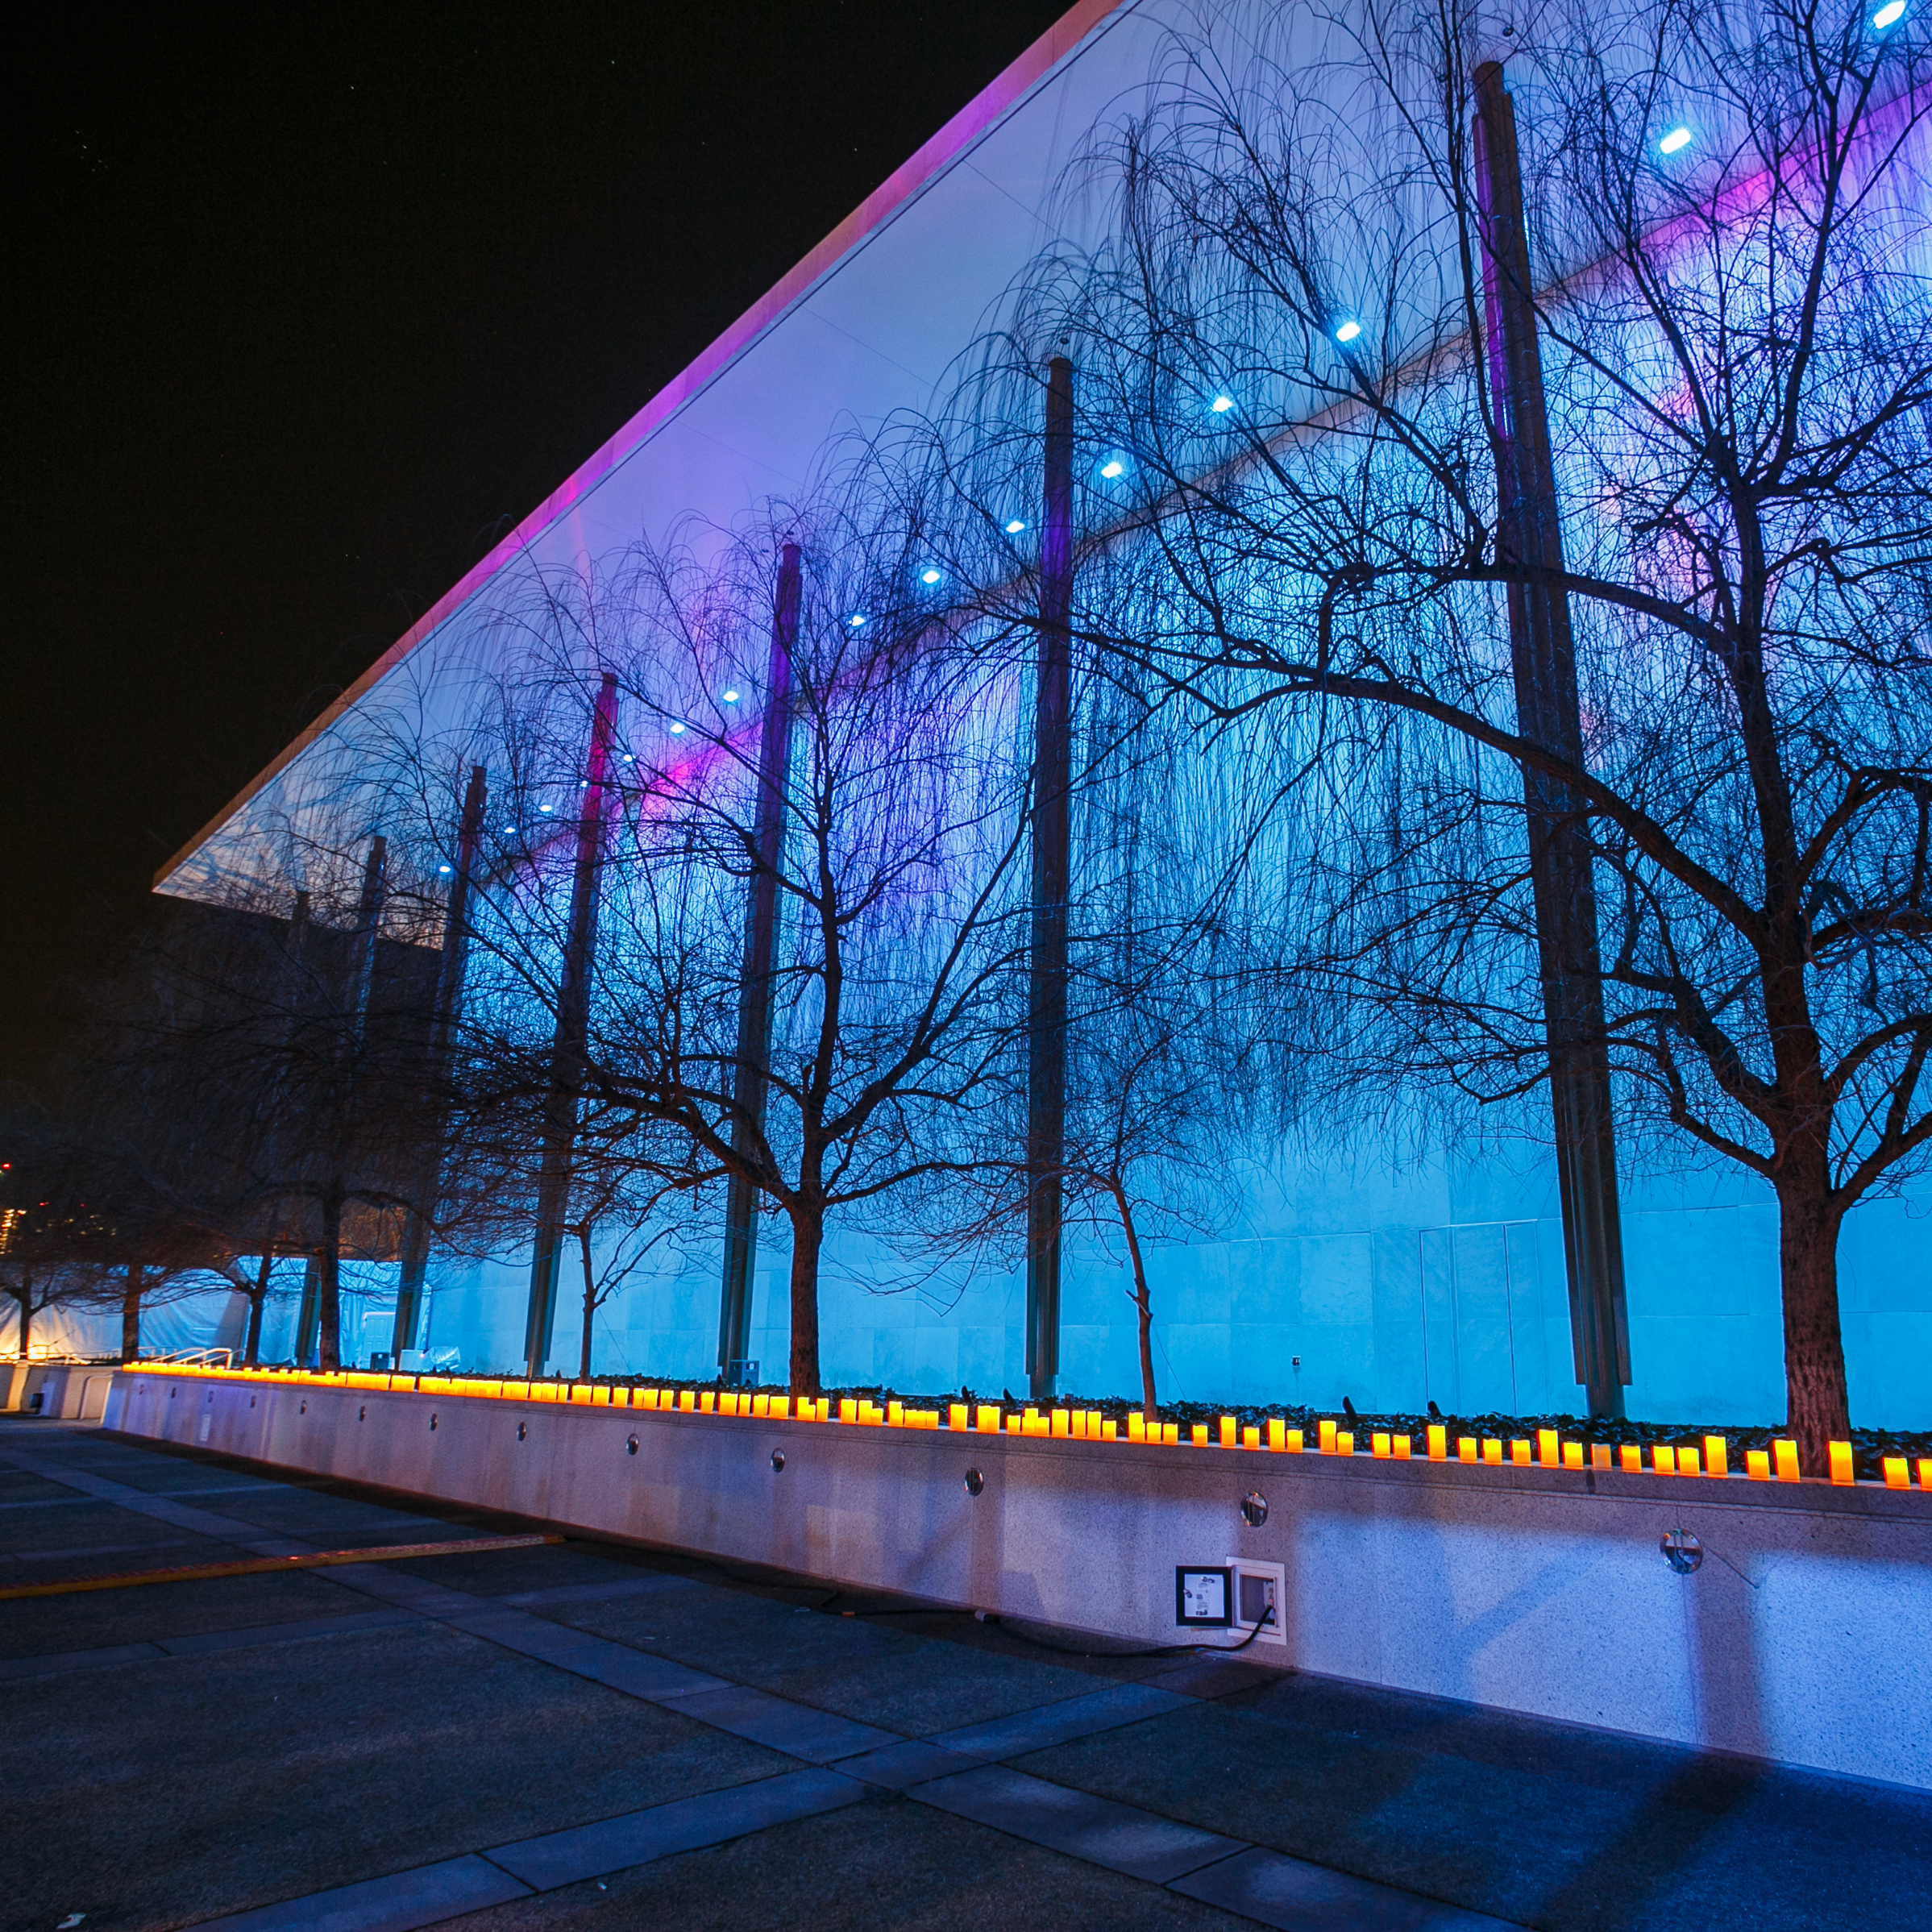 Northern Lights illuminate the Kennedy Center in Washington, D.C., during its monthlong festival, Nordic Cool 2013. The festival includes performances and exhibits from more than 750 artists. The exhibit runs through March 17.